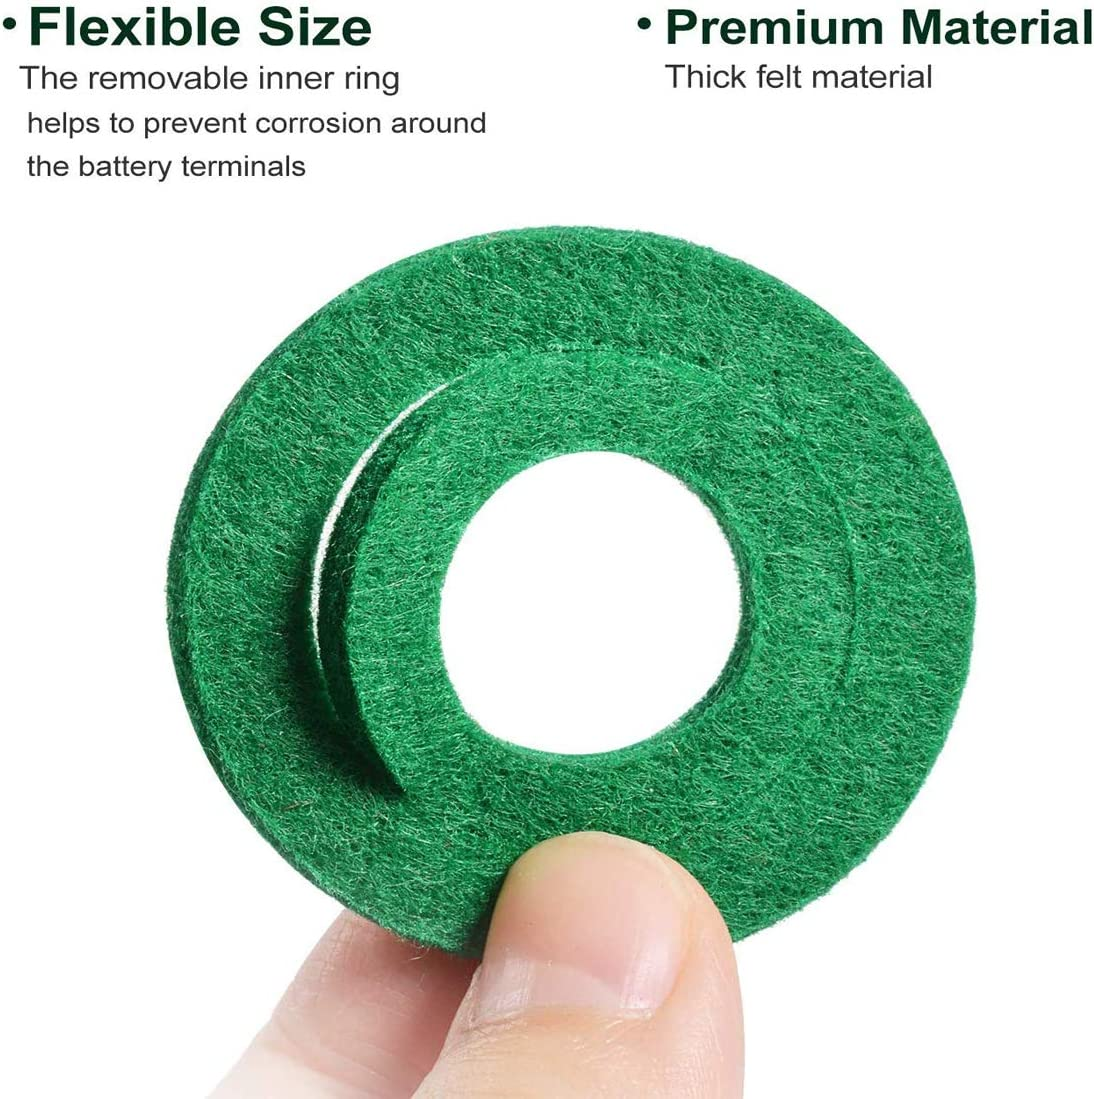 30 pcs Battery Terminal Anti Corrosion Fiber Washers Battery Terminal Protector Pads 15 Red and 15 Green